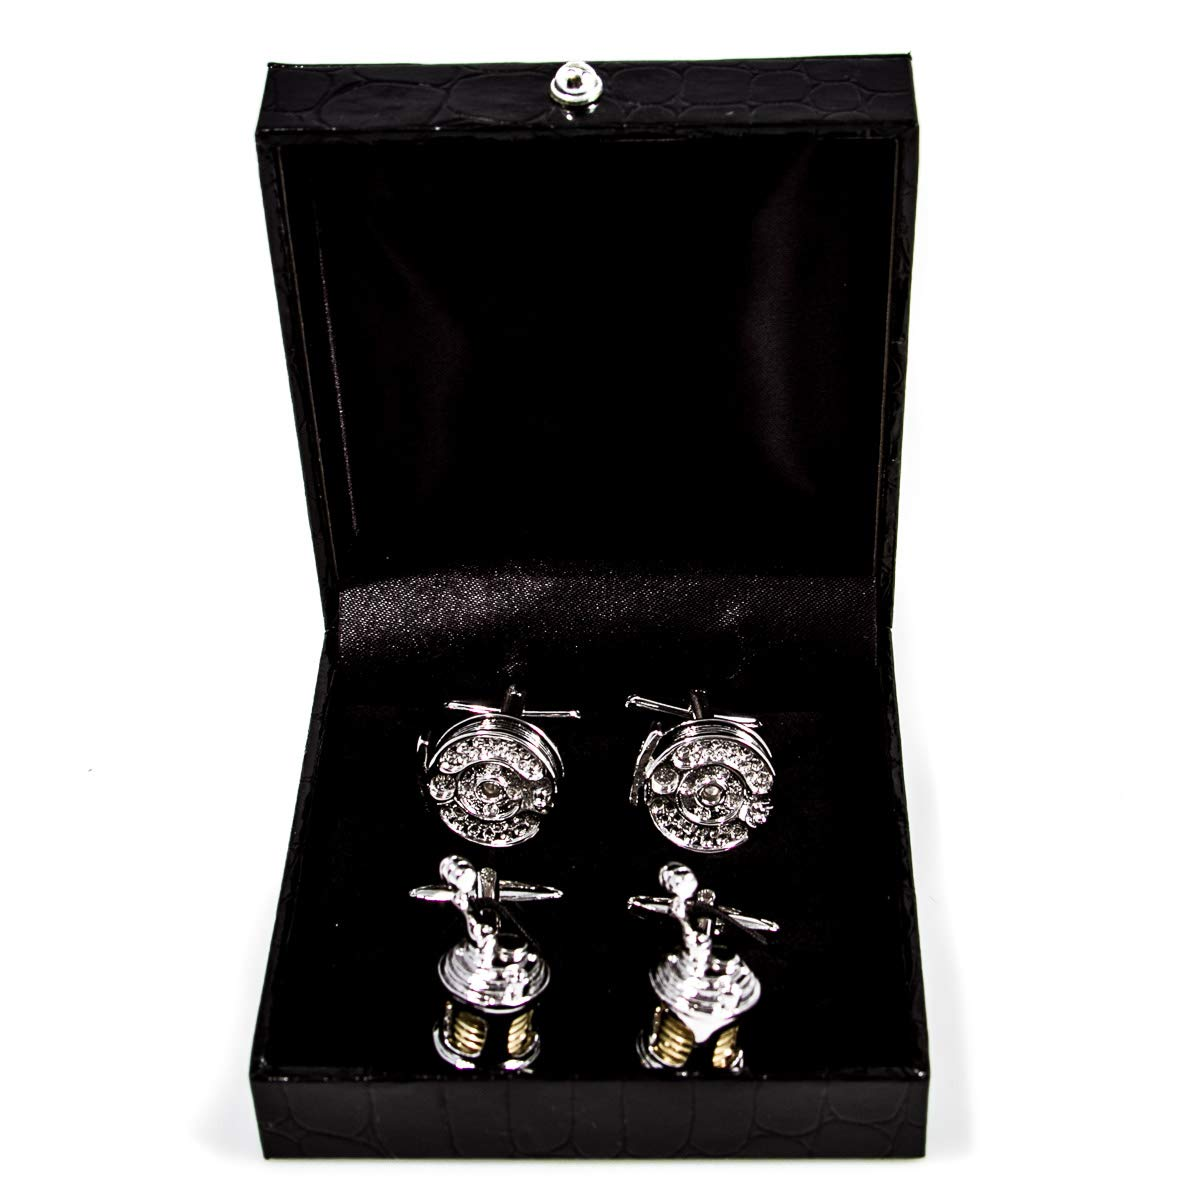 MRCUFF Fishing Reels Deep Sea /& Fly 2 Two Pairs of Cufflinks in a Presentation Gift Box /& Polishing Cloth